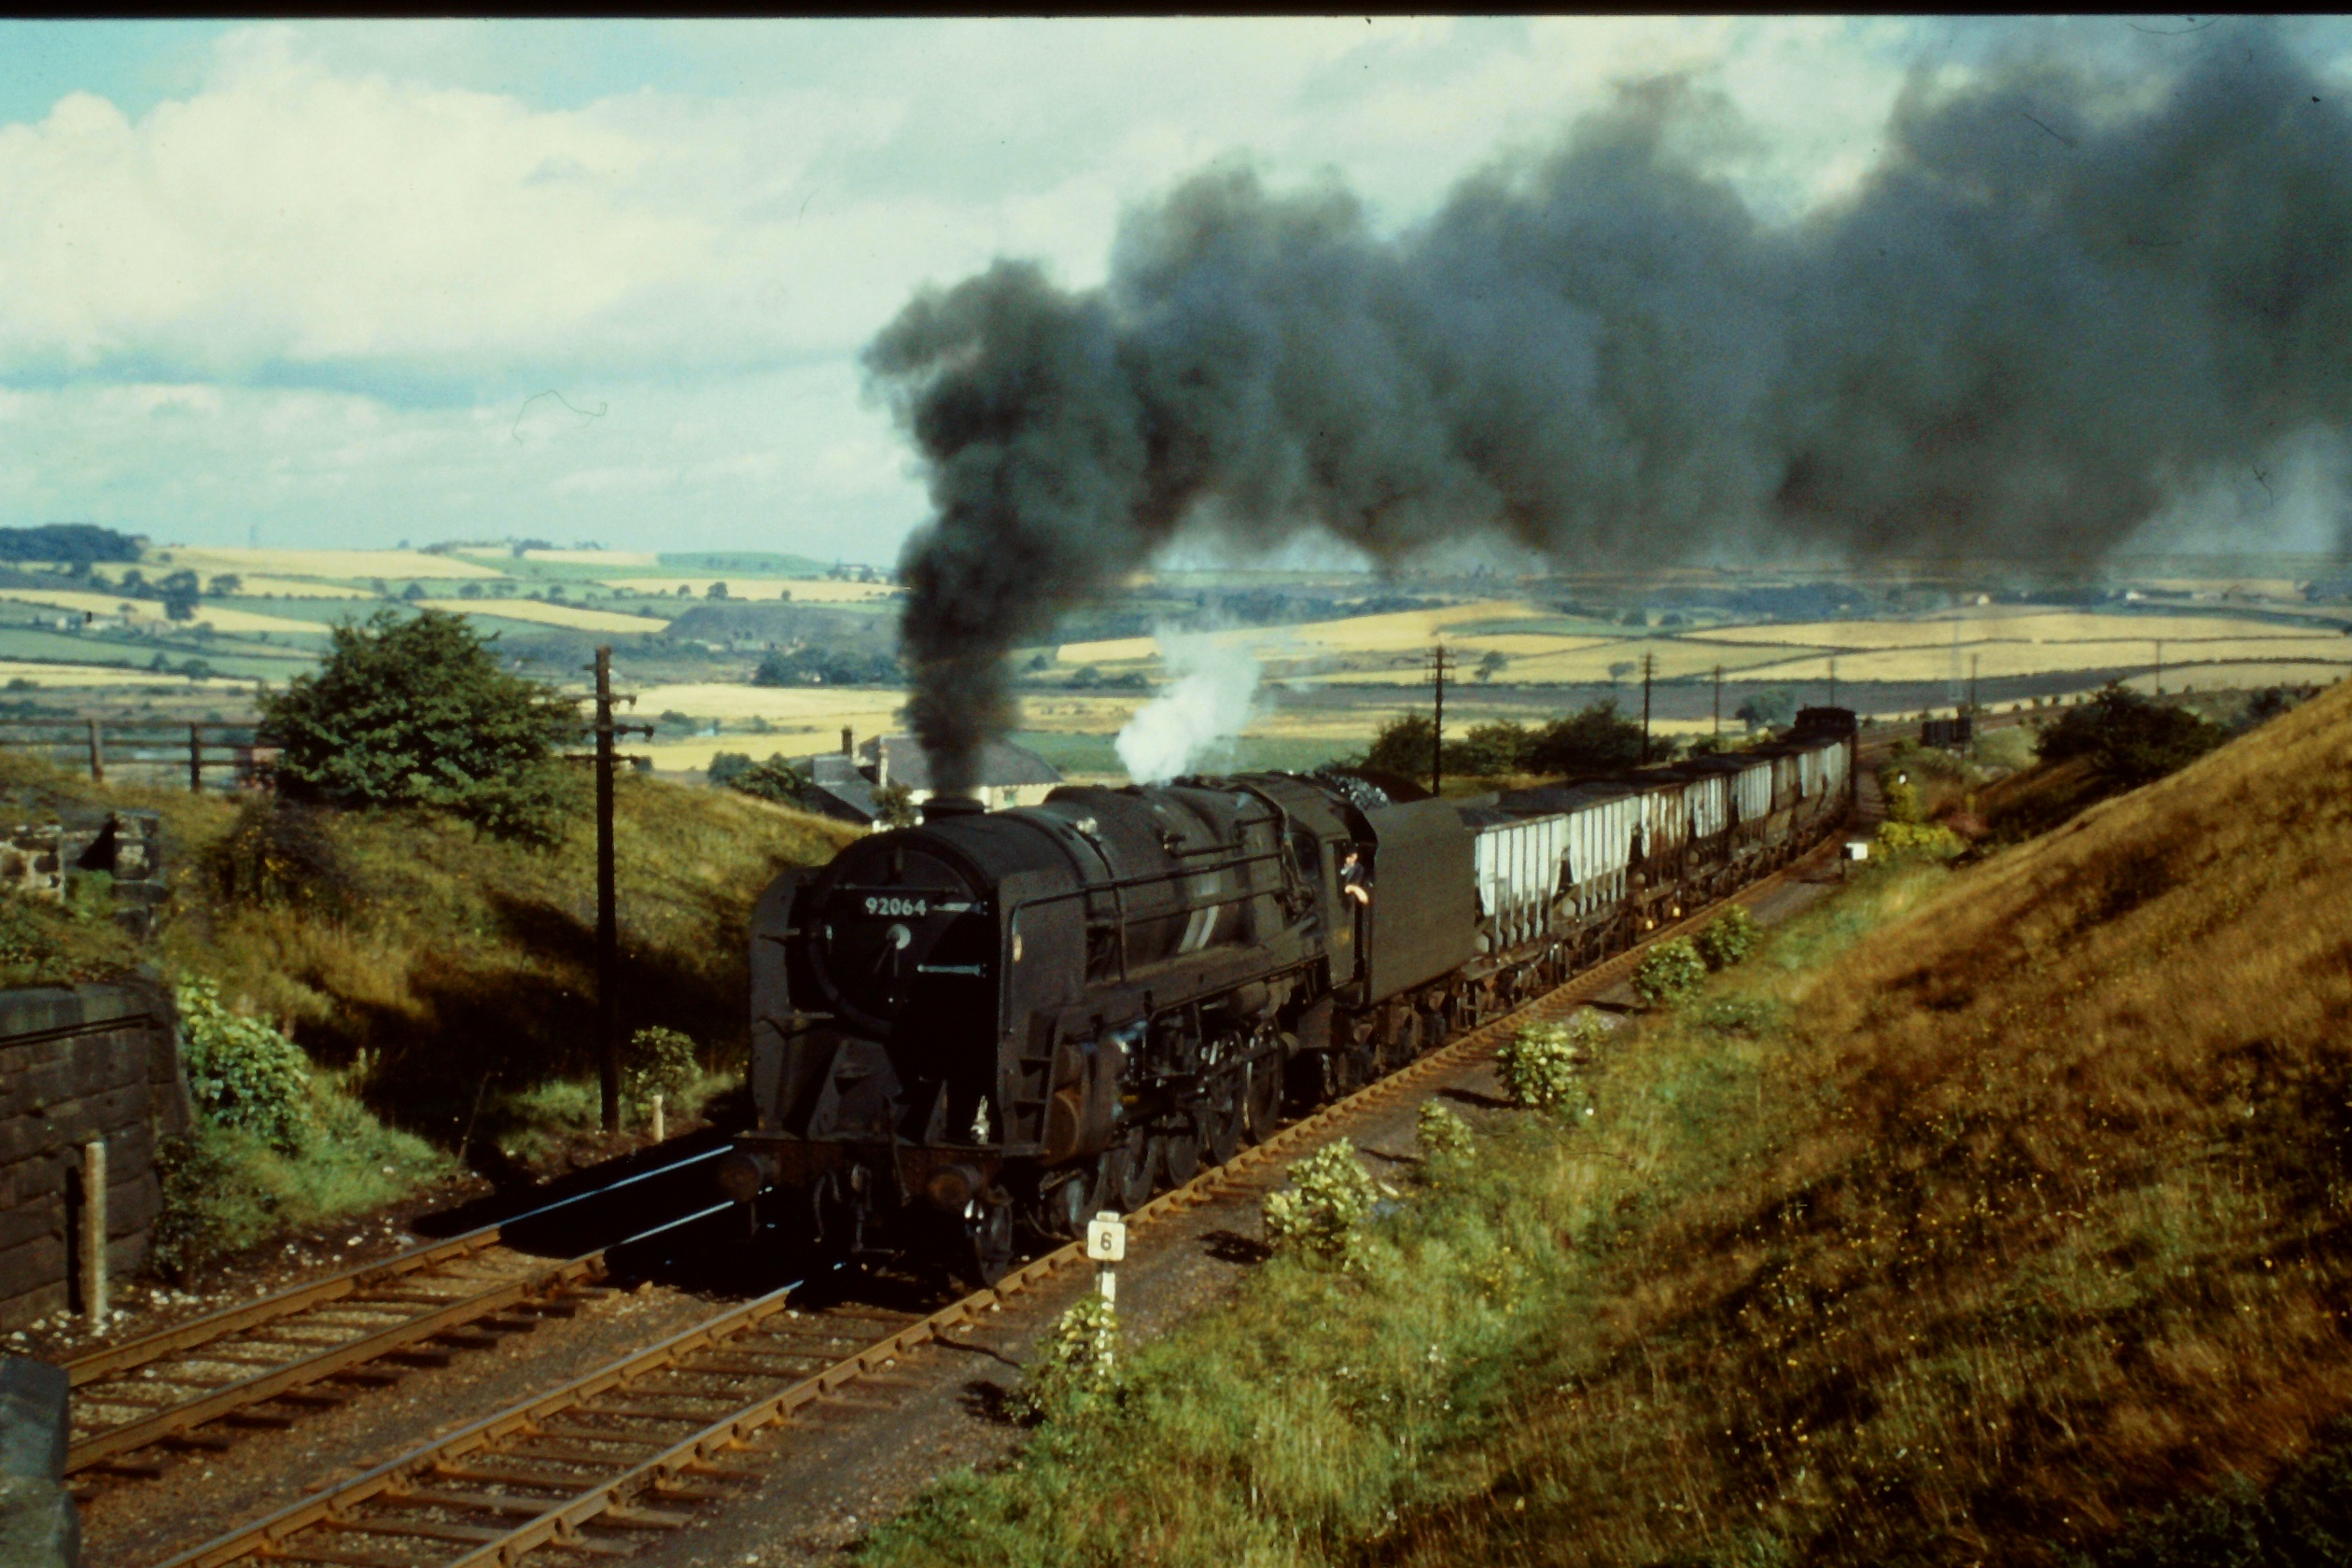 9F 92064 heads a train of 21T hoppers between Pelton and Beamish. Photo Author's Collection